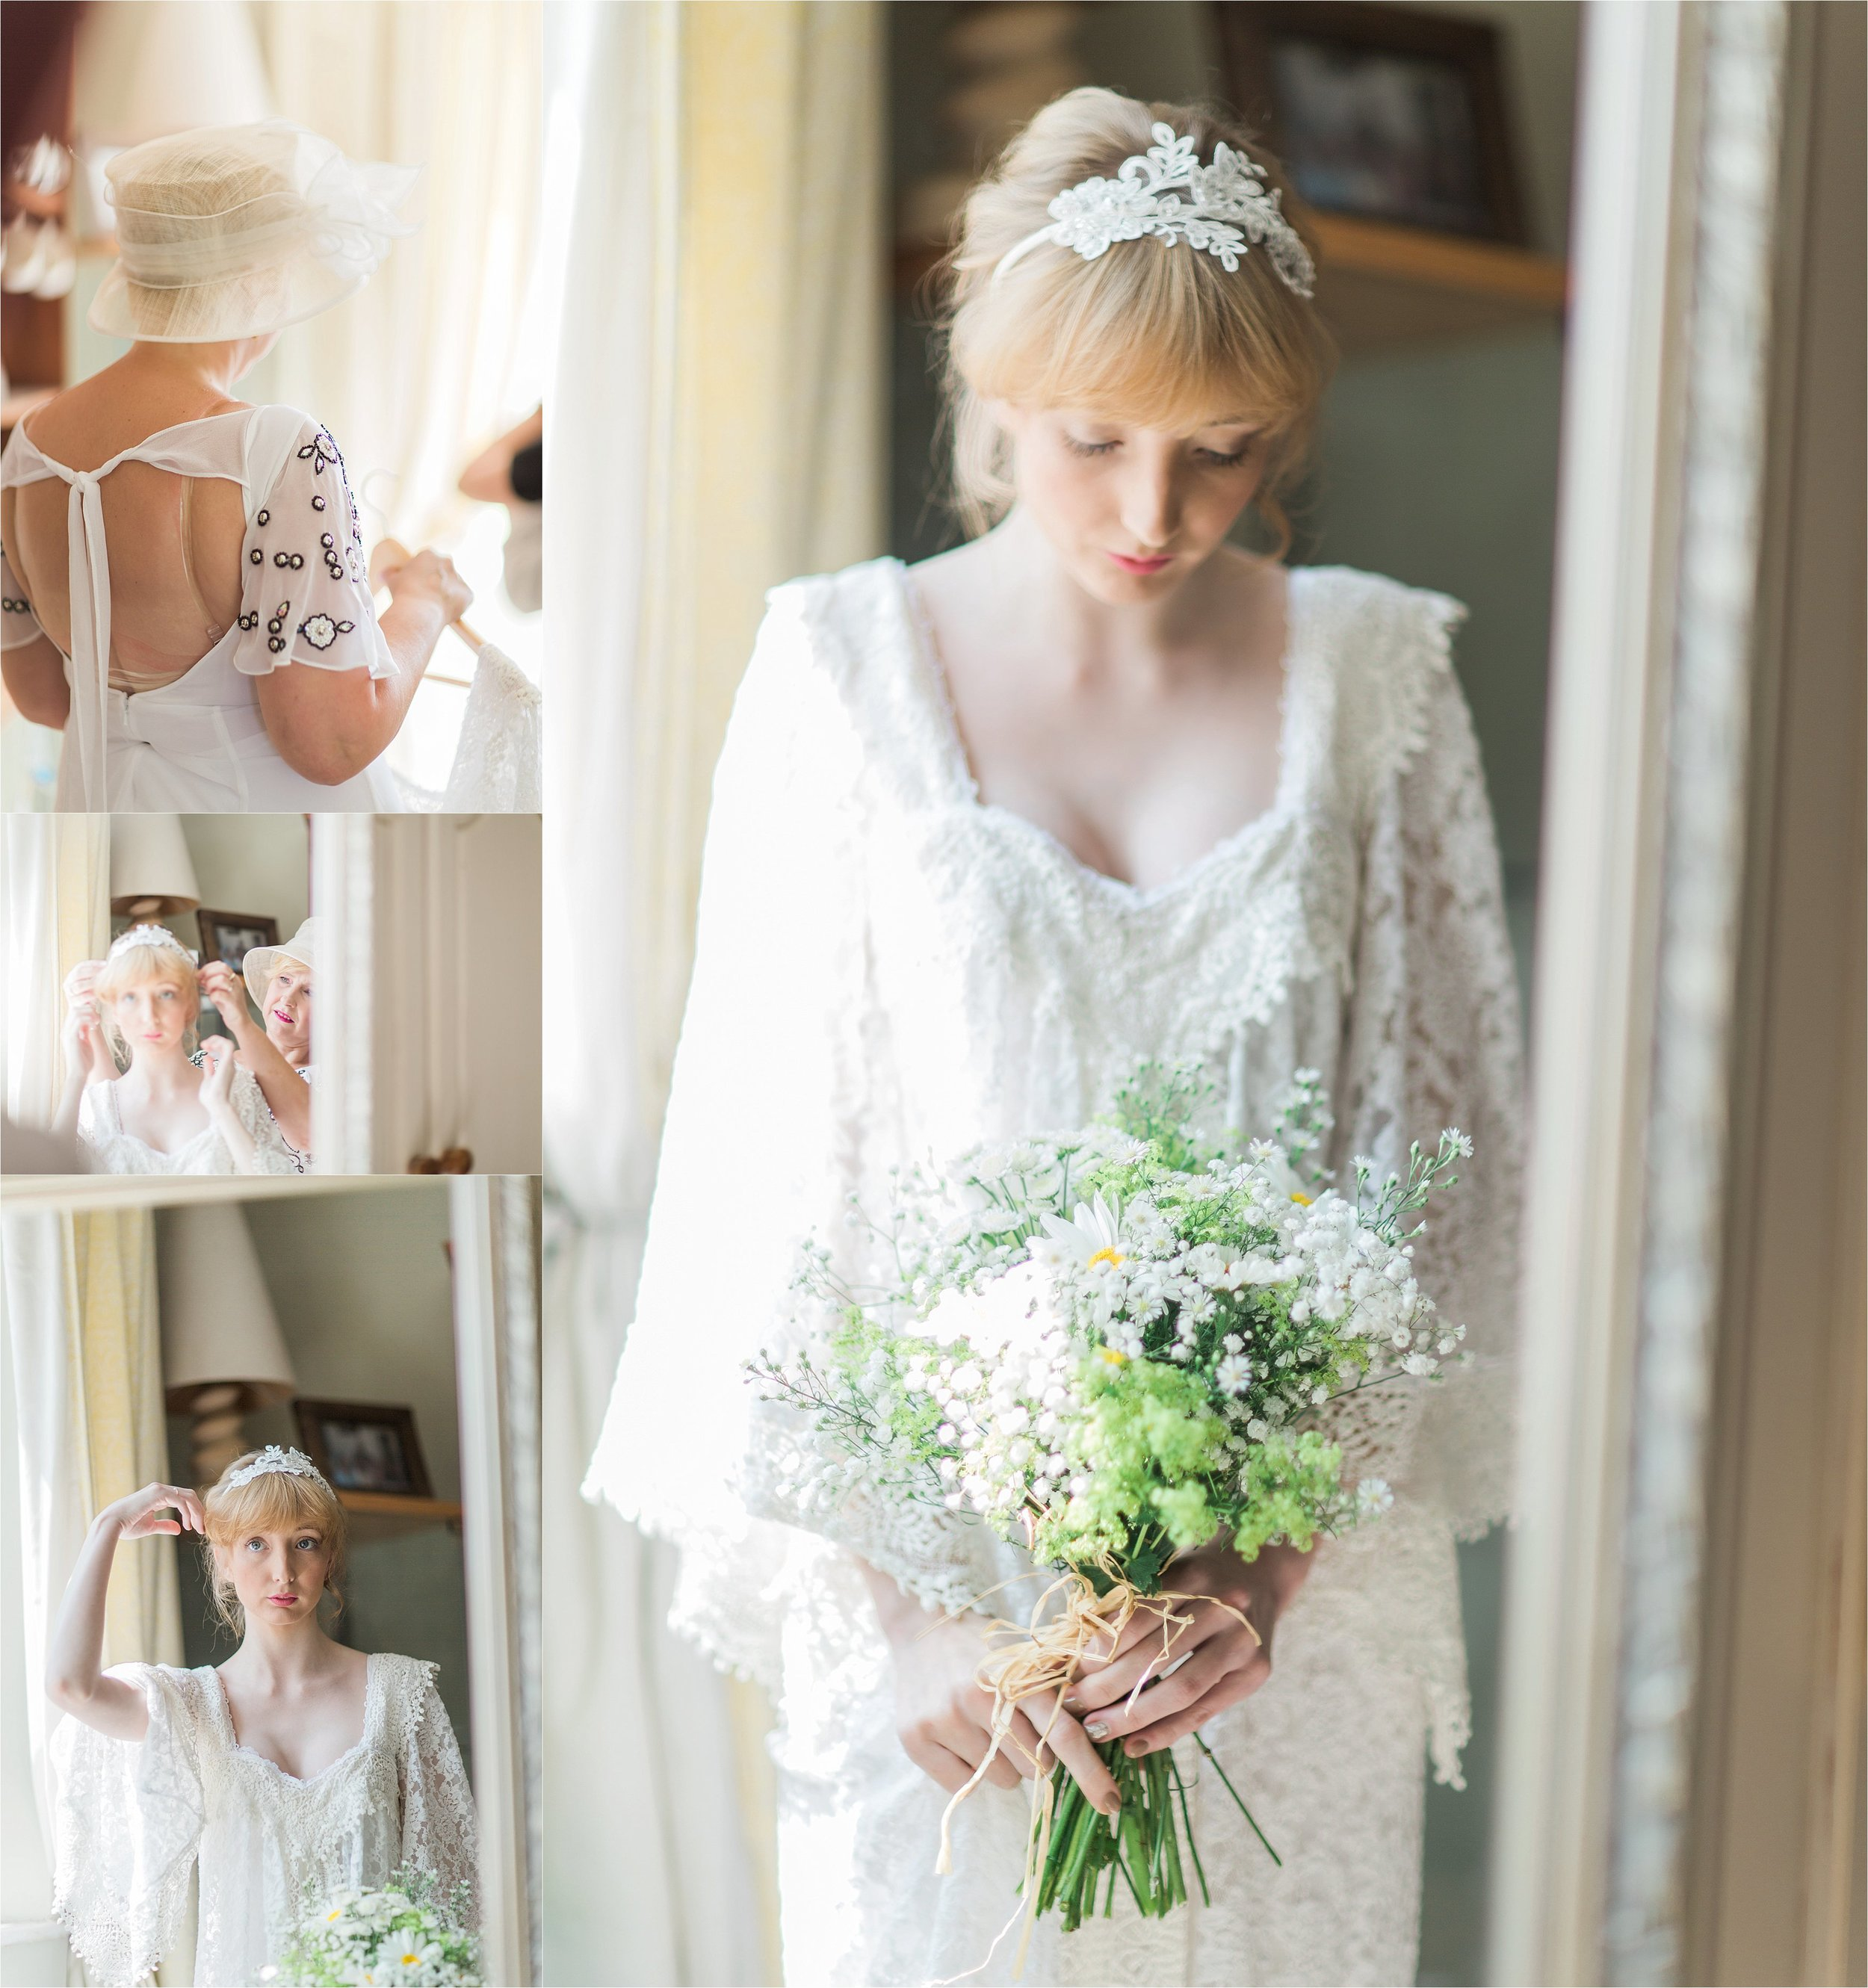 The mother of the bride looked absolutely stunning in a white chiffon maxi dress, and Annabelle'sfinished look was absolutely flawless.